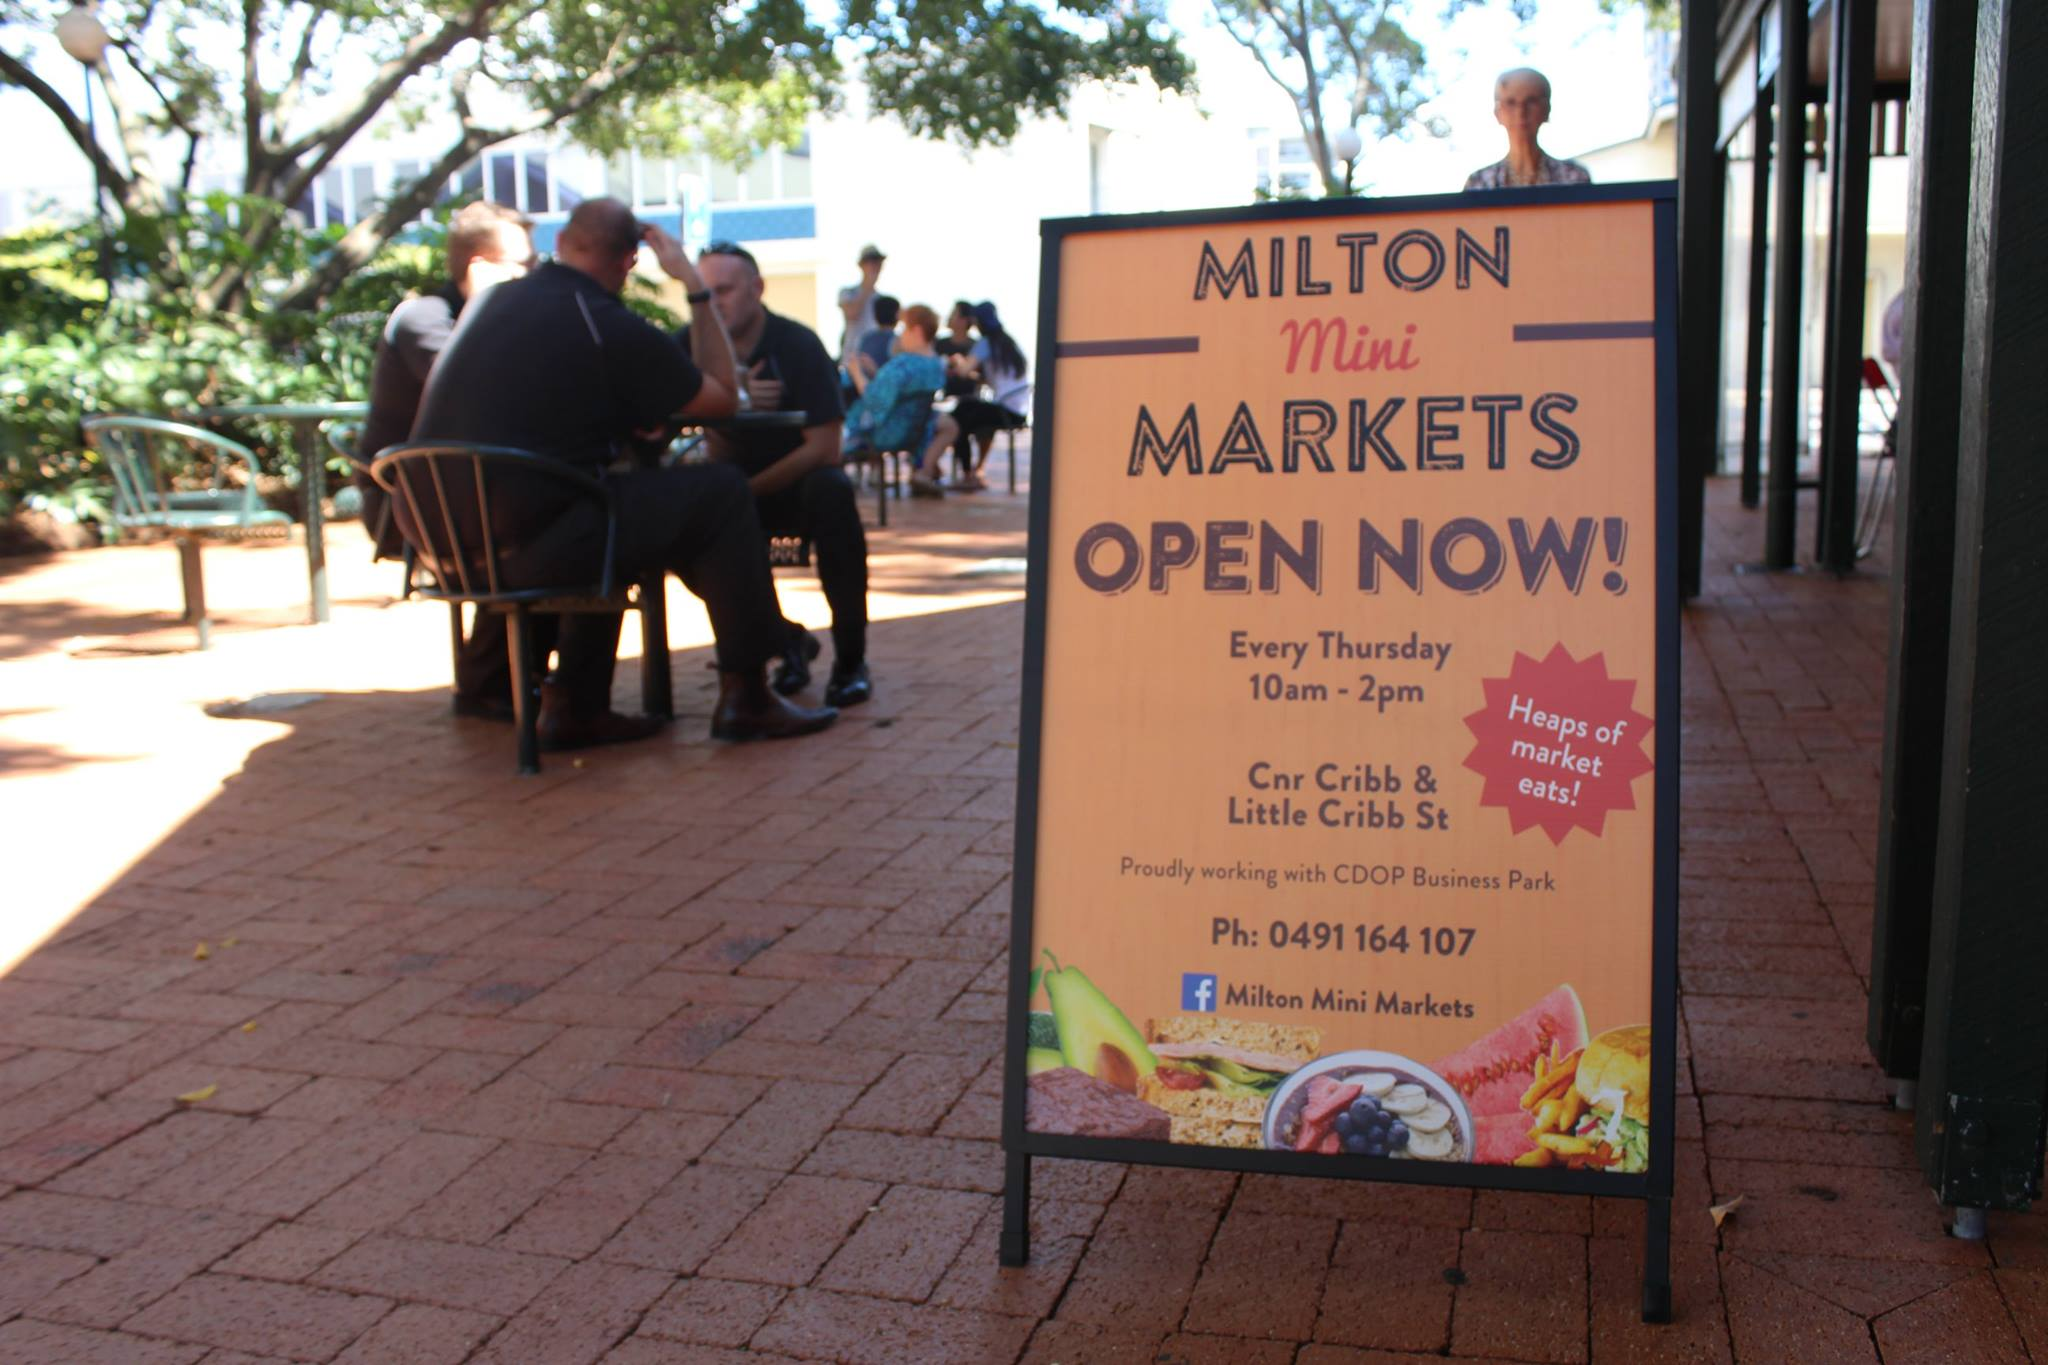 Milton Mini Markets